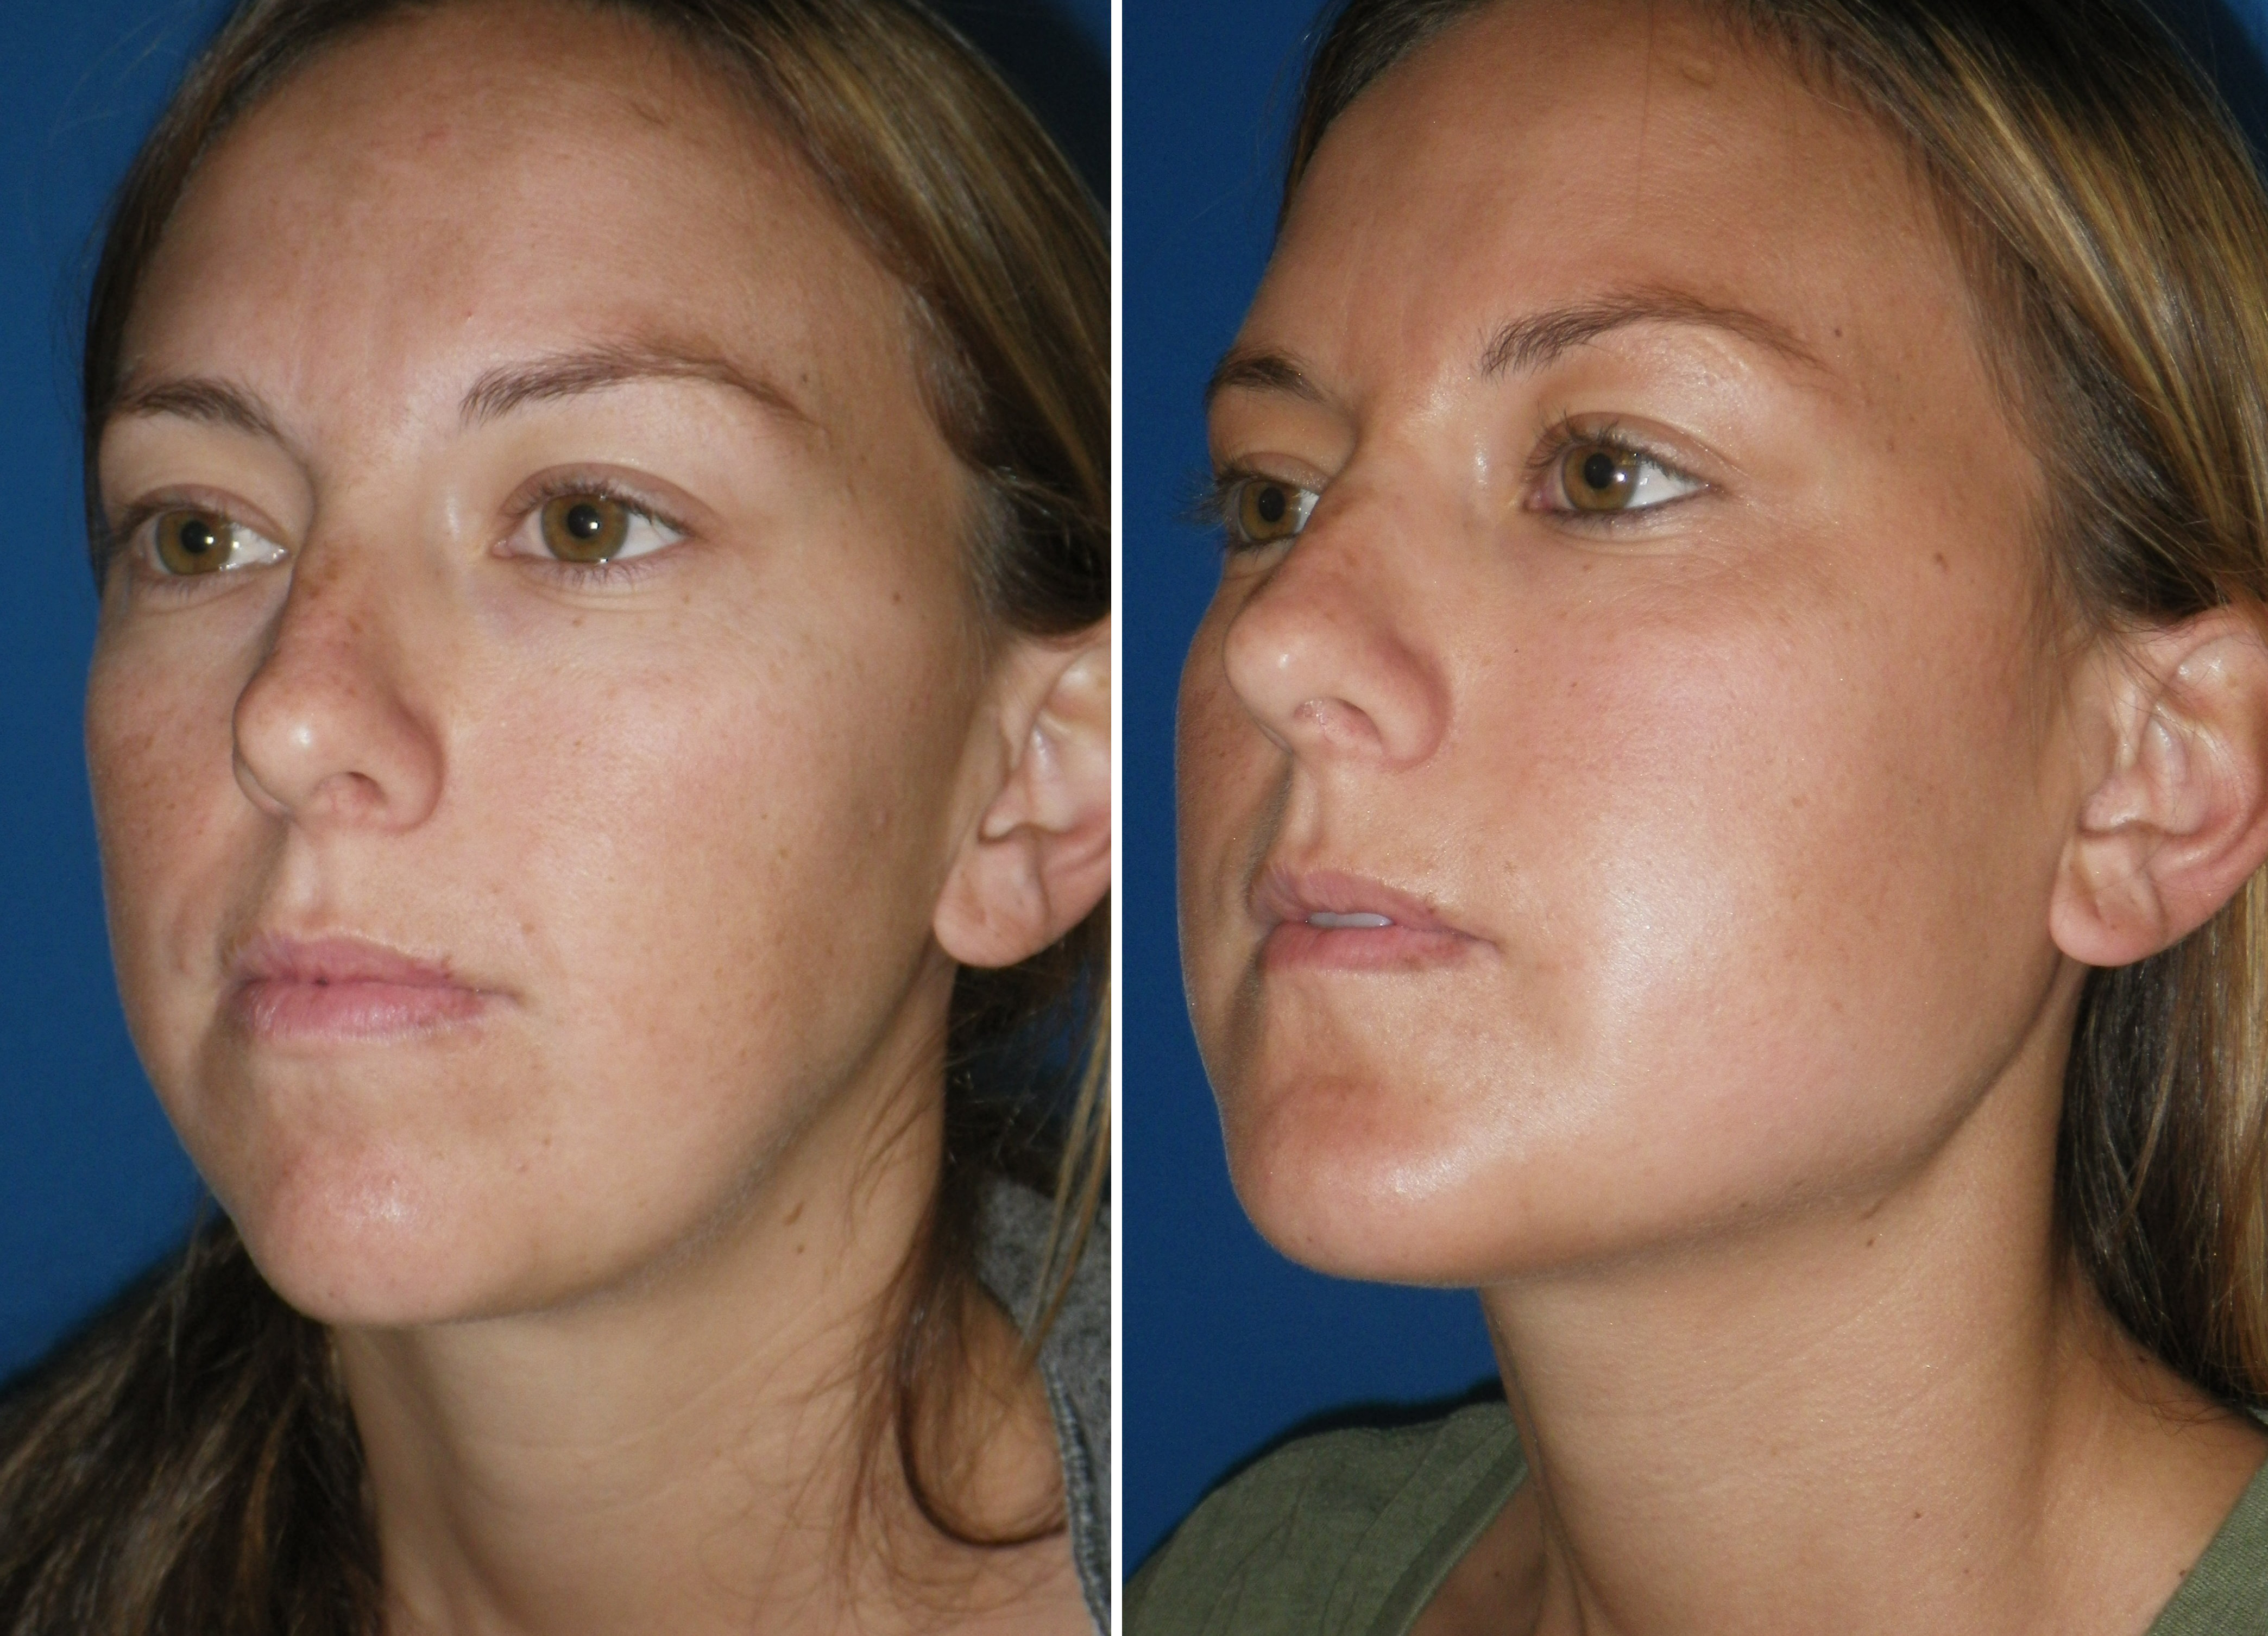 Mandible Implants Before And After